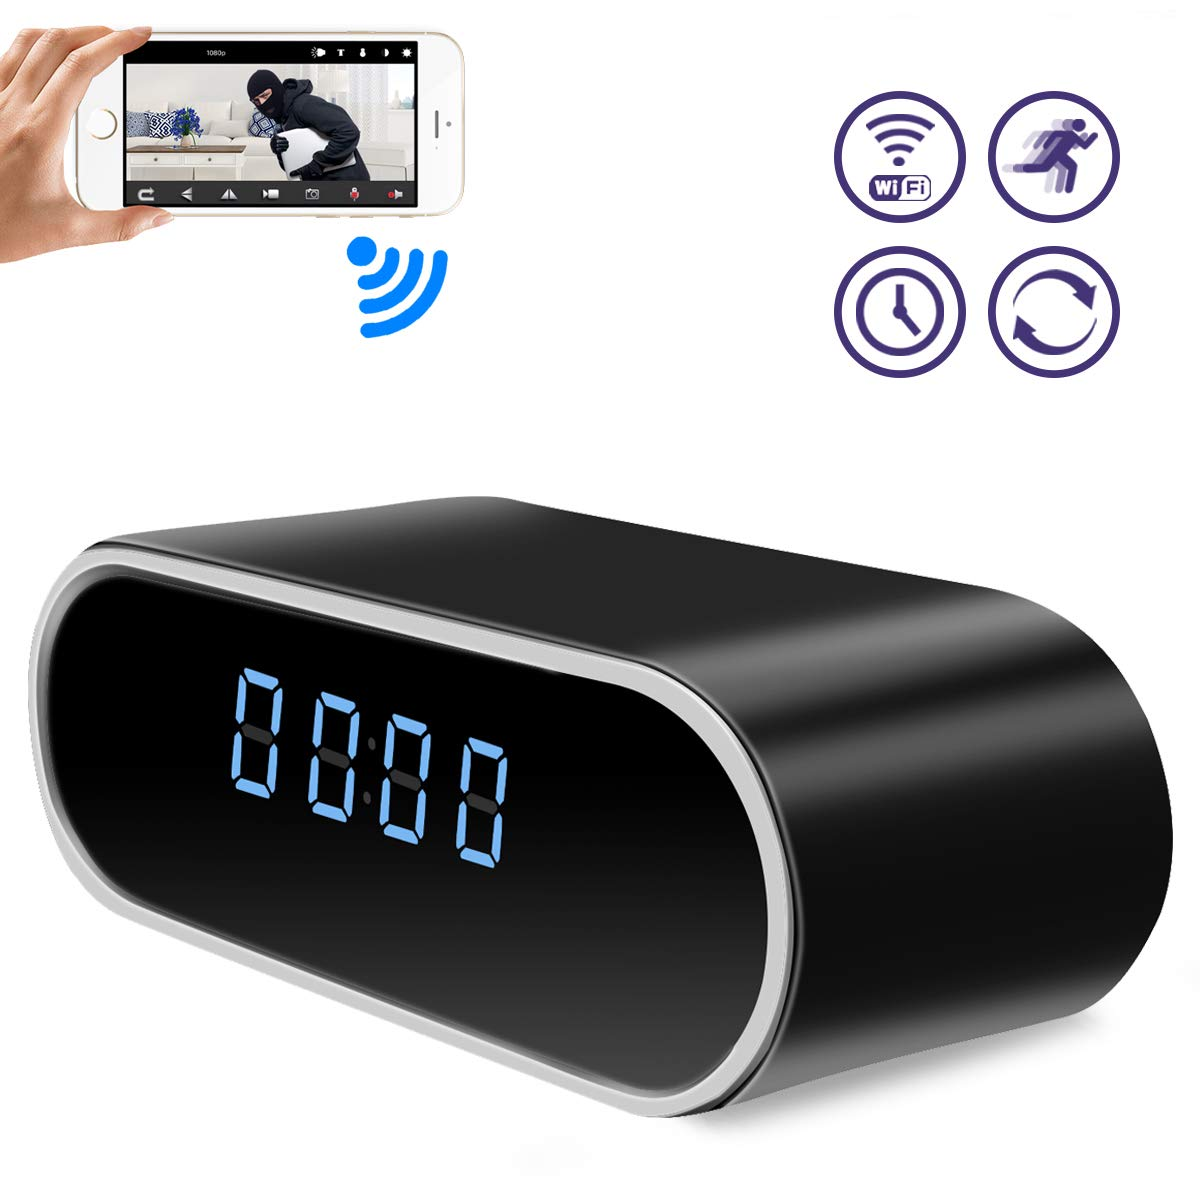 Spy Hidden Camera, WHDSWL Alarm Clock 1080P Security Nanny Wi-Fi Camera, with Night Vision Motion Detection Loop Recording Office Home Support iOS Android PC Remote Real-time Video